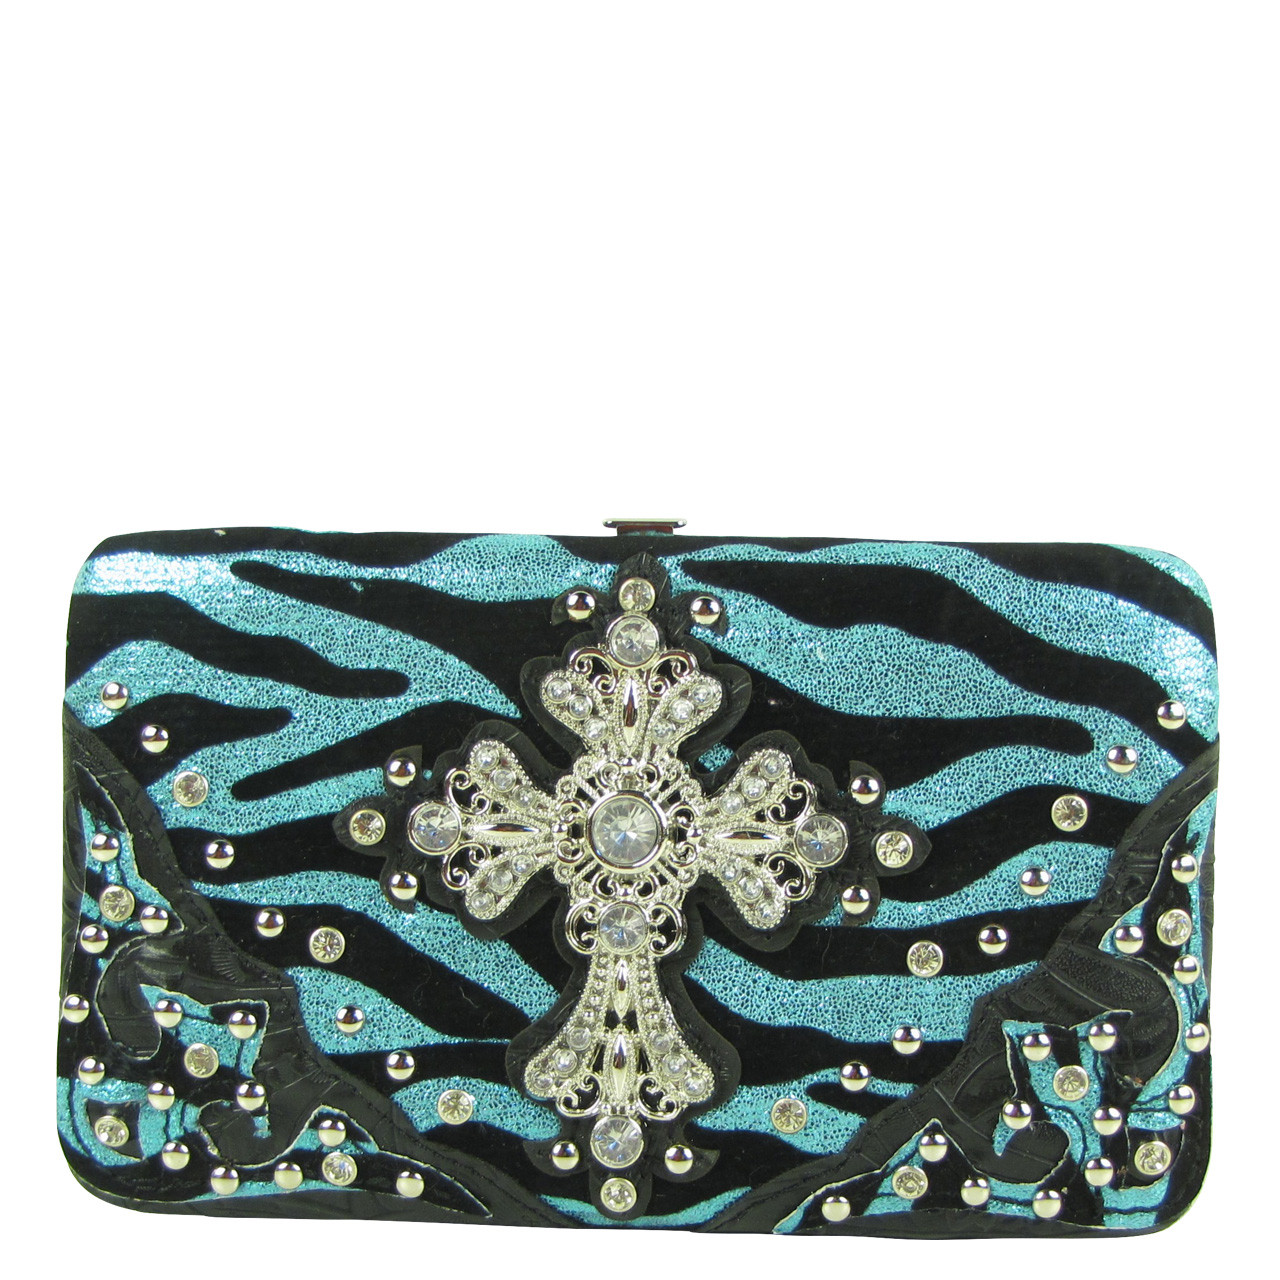 TURQUOISE STUDDED RHINESTONE ZEBRA CROSS LOOK FLAT THICK WALLET FW2-04126TRQ